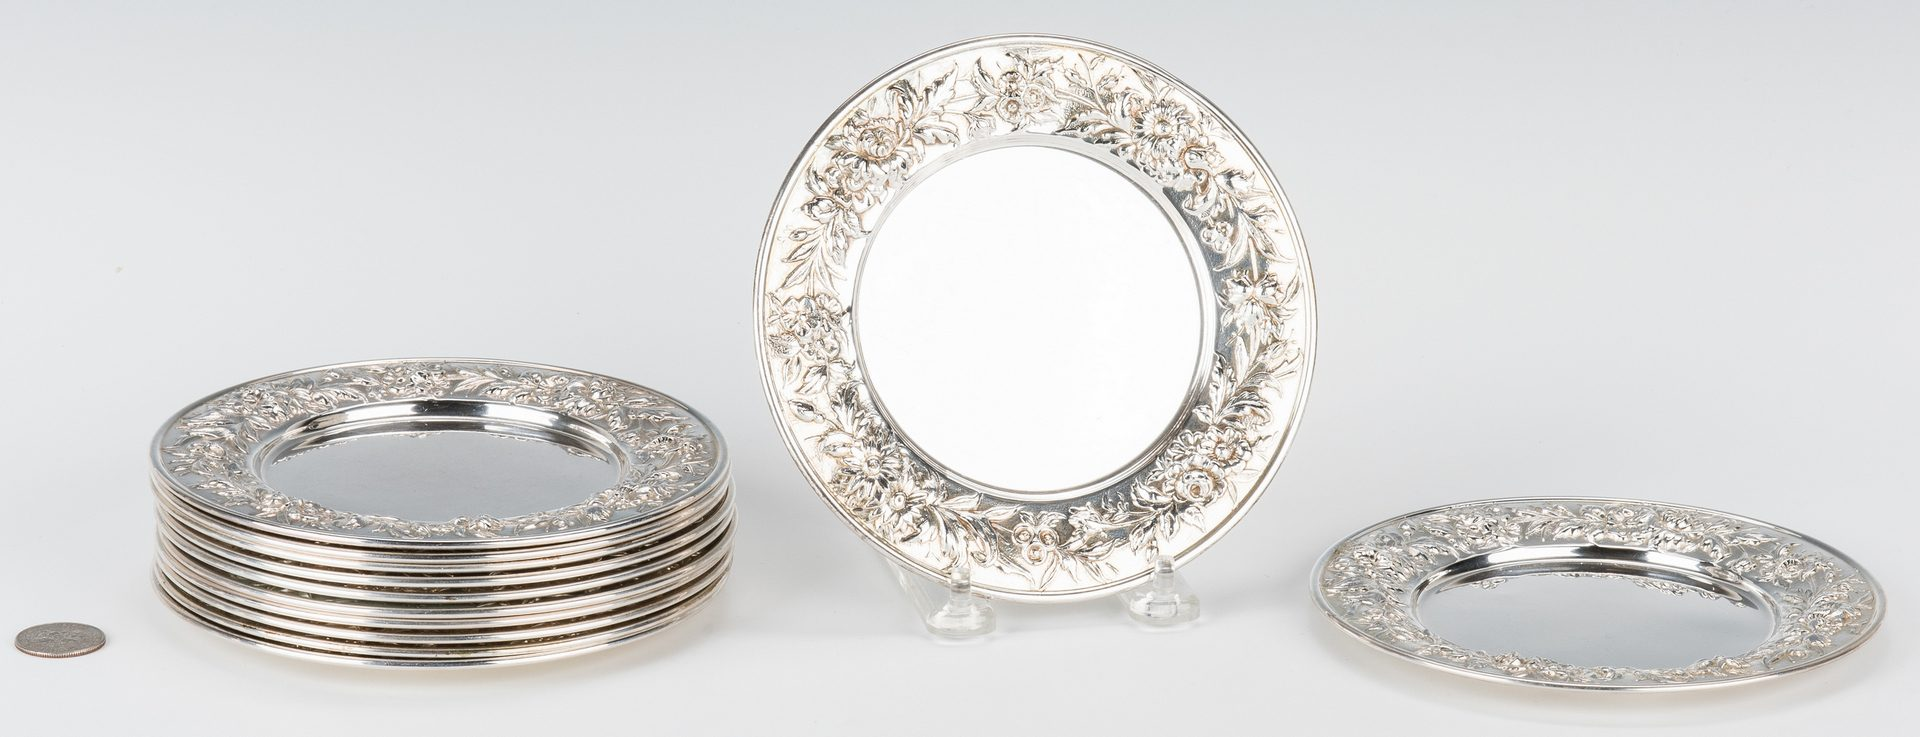 Lot 458: 12 S. Kirk & Son Bread Plates, Repousse Rims